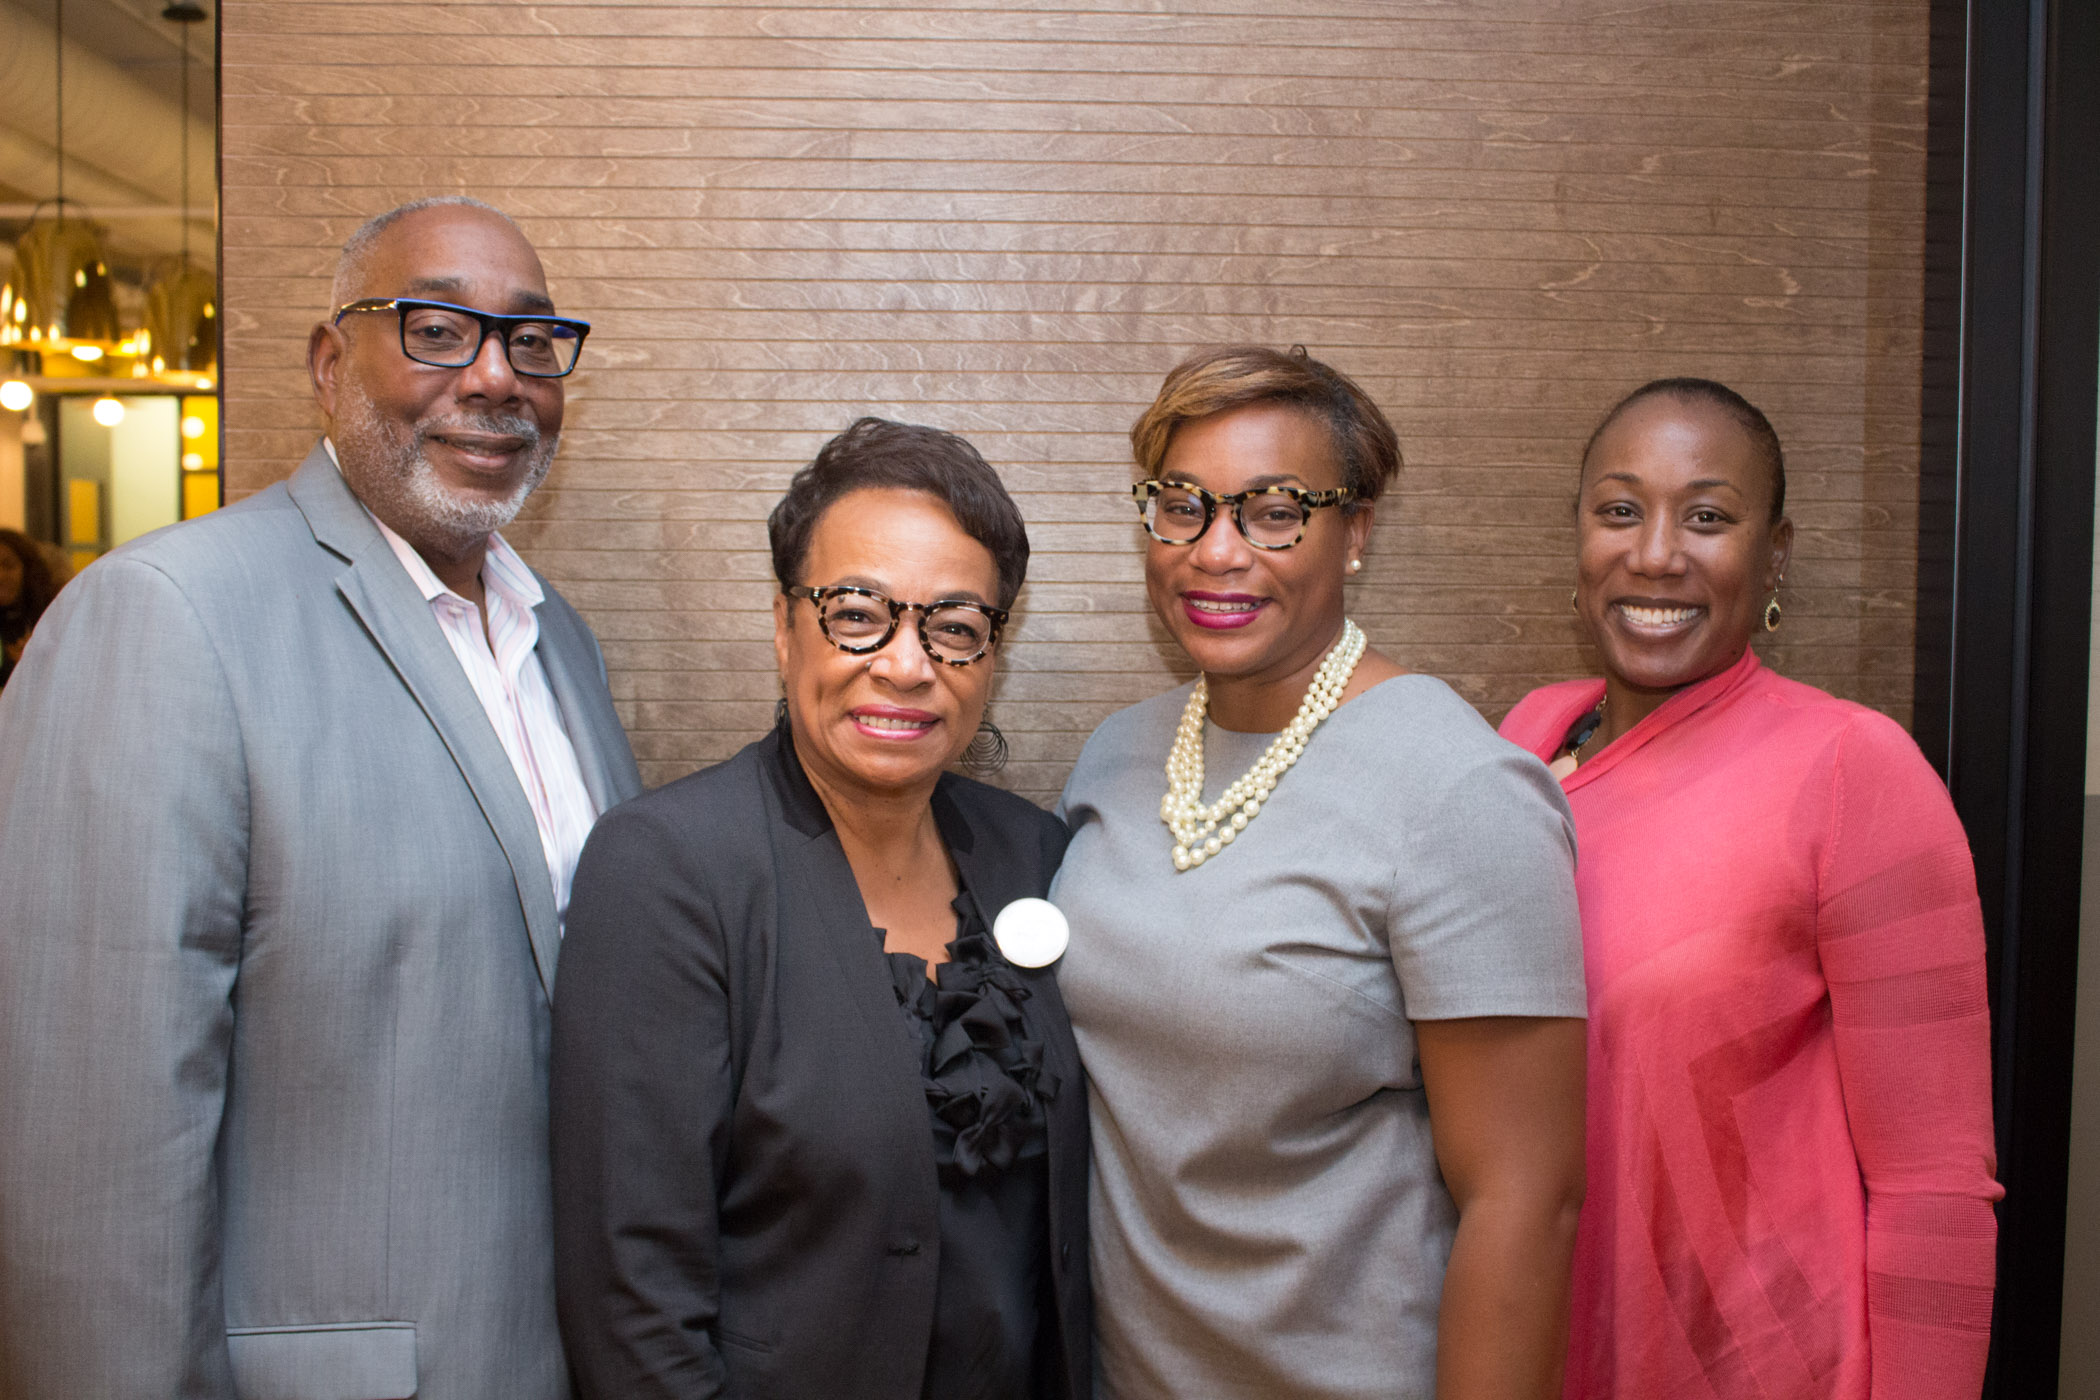 Honoree, Dr. Joyce Valeria Brown Founder, Joyce V. Brown Consulting Group, LLC, & guests enjoy the Chicago reception